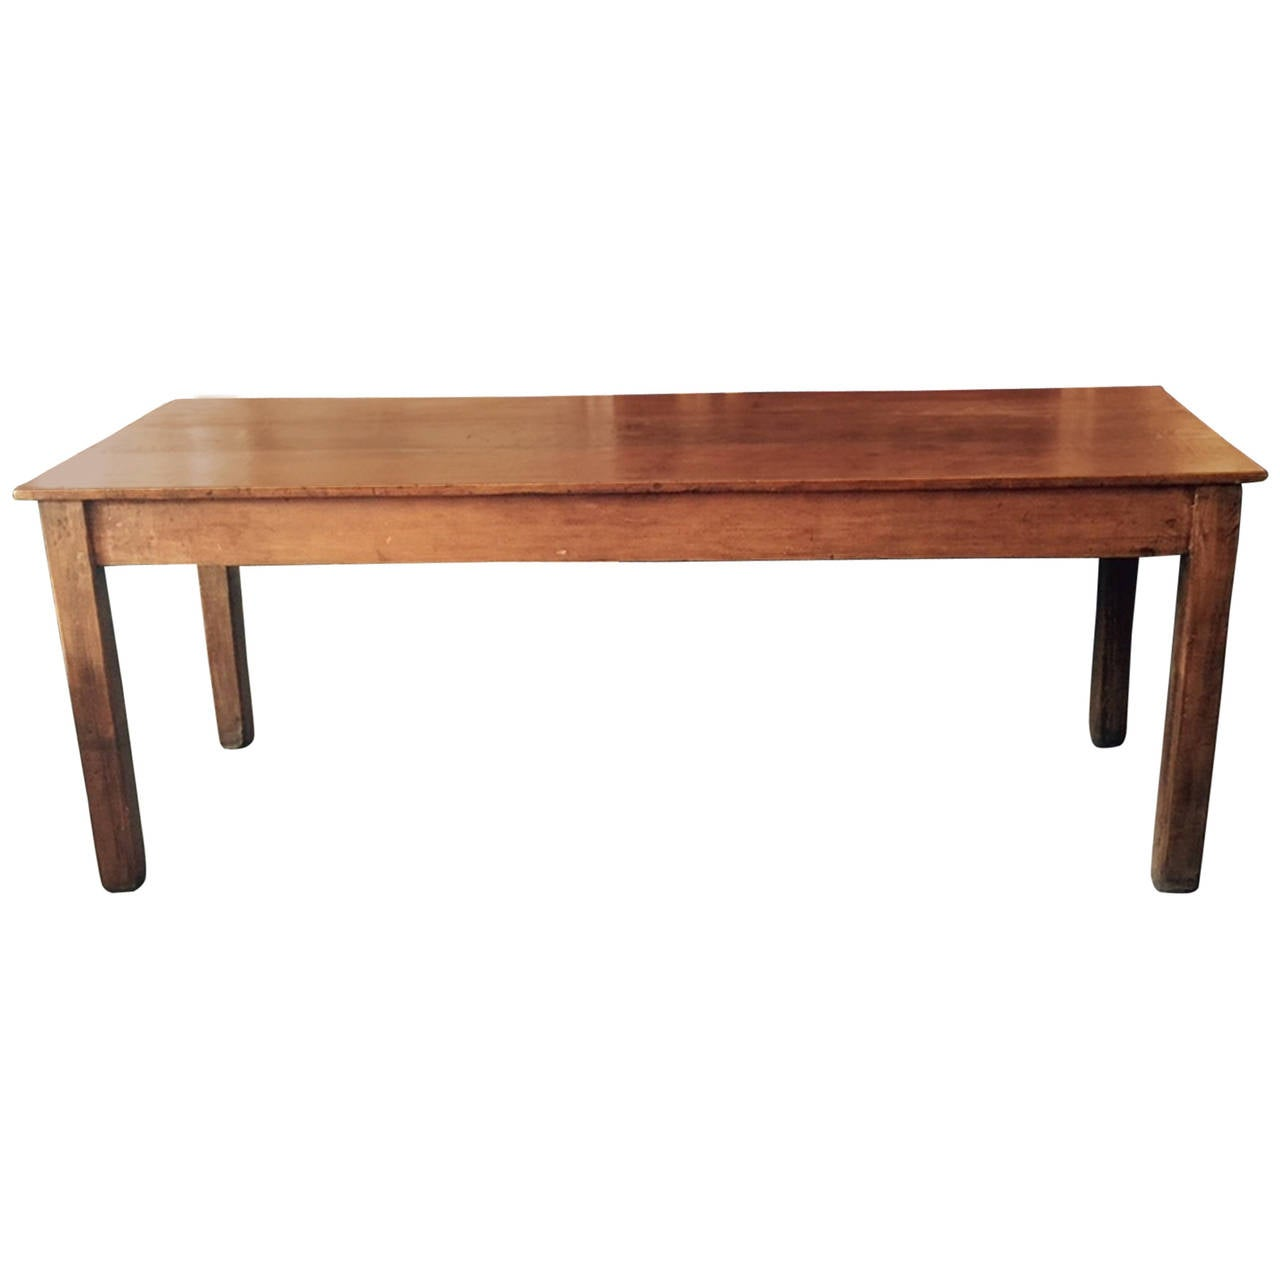 Rustic Italian Wood Farm Table Of Pine Early 20th Century